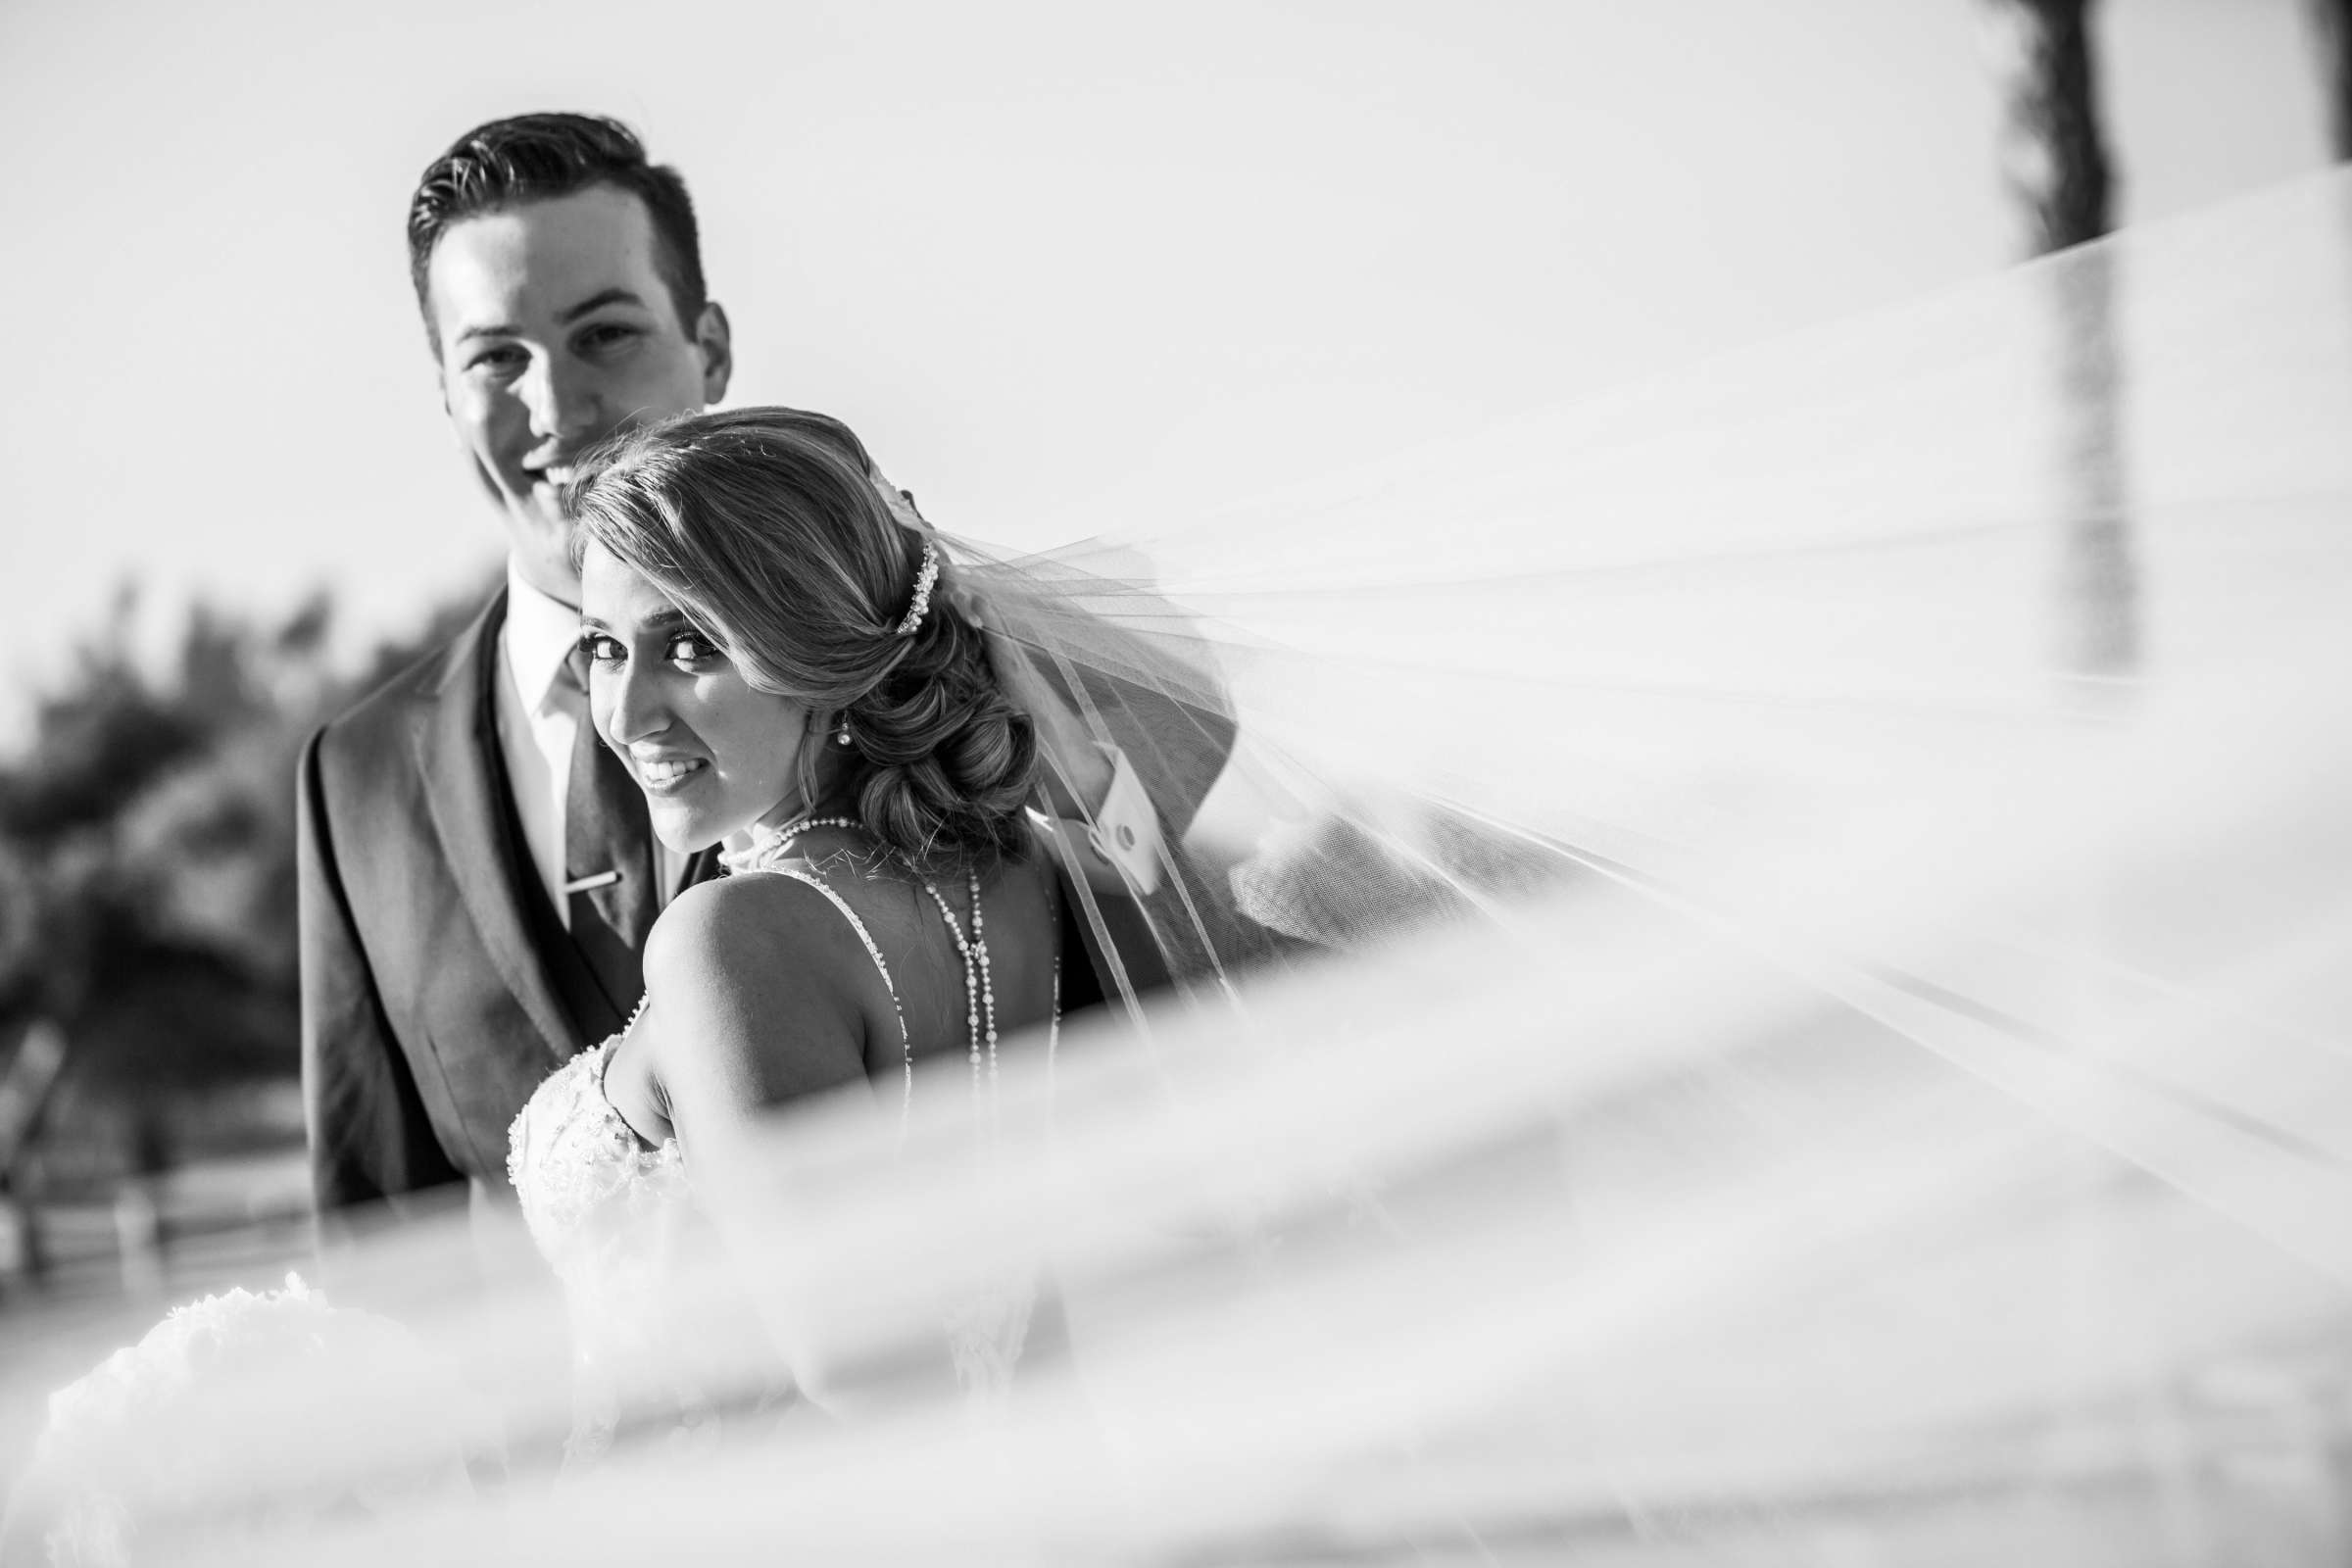 Fairbanks Ranch Country Club Wedding coordinated by Monarch Weddings, Gabriella and Kyle Wedding Photo #112 by True Photography